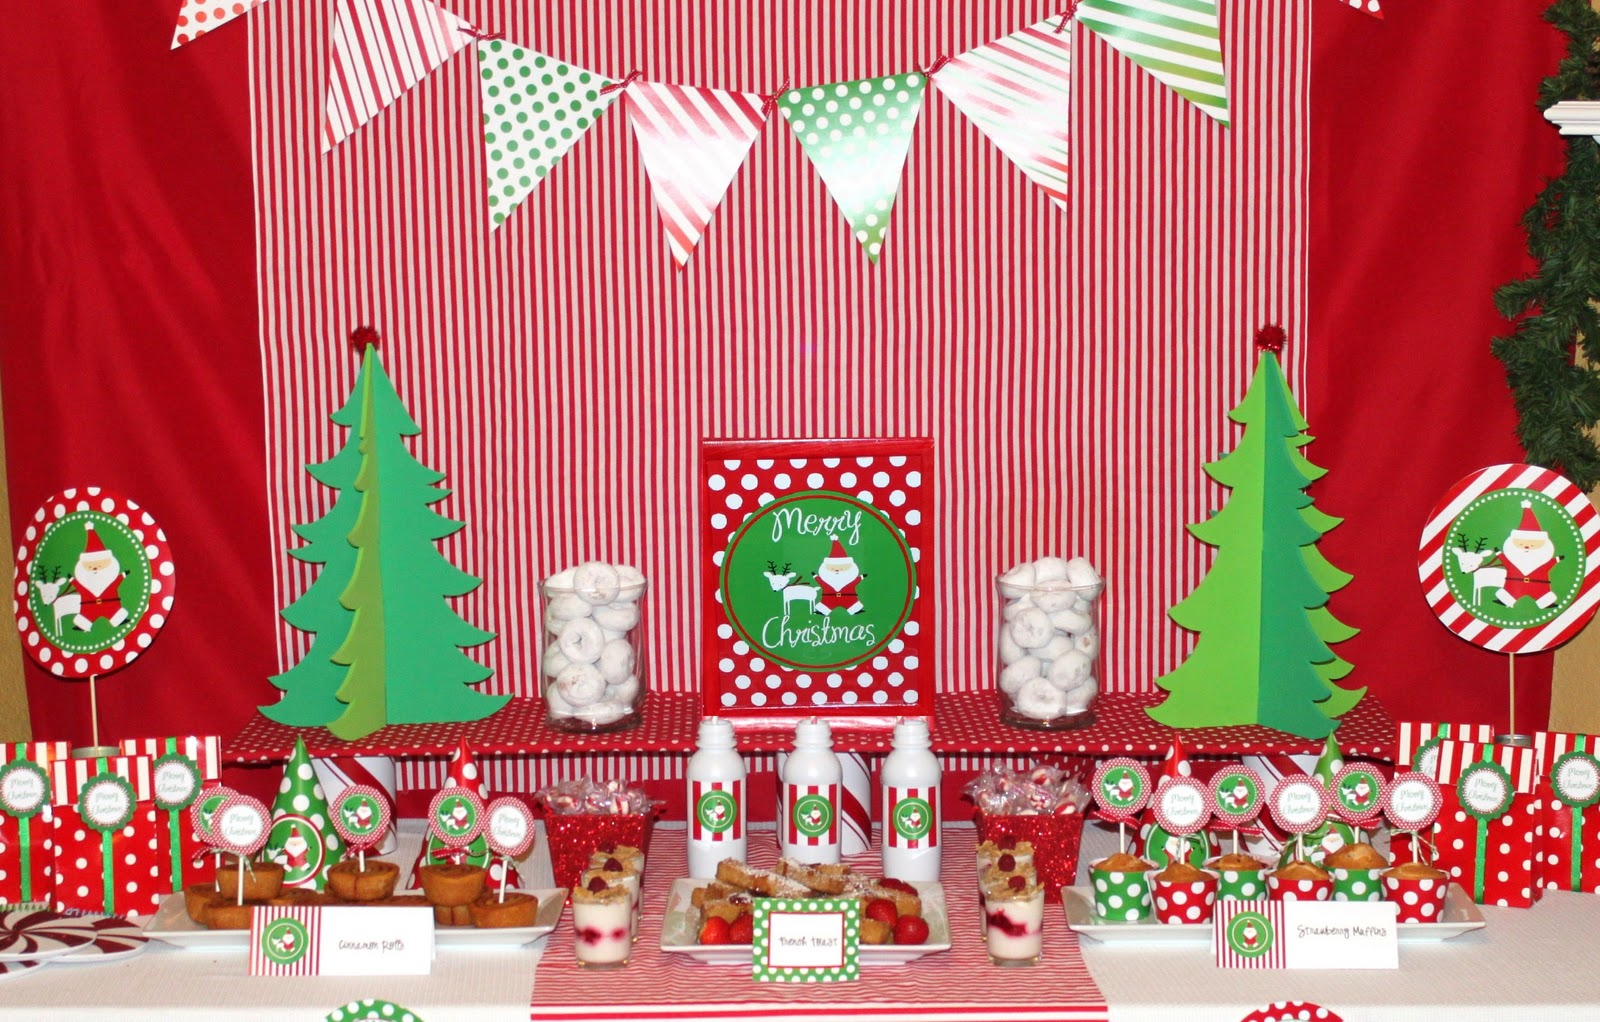 Kids christmas party decorations - Kids Christmas Party Decorations 16